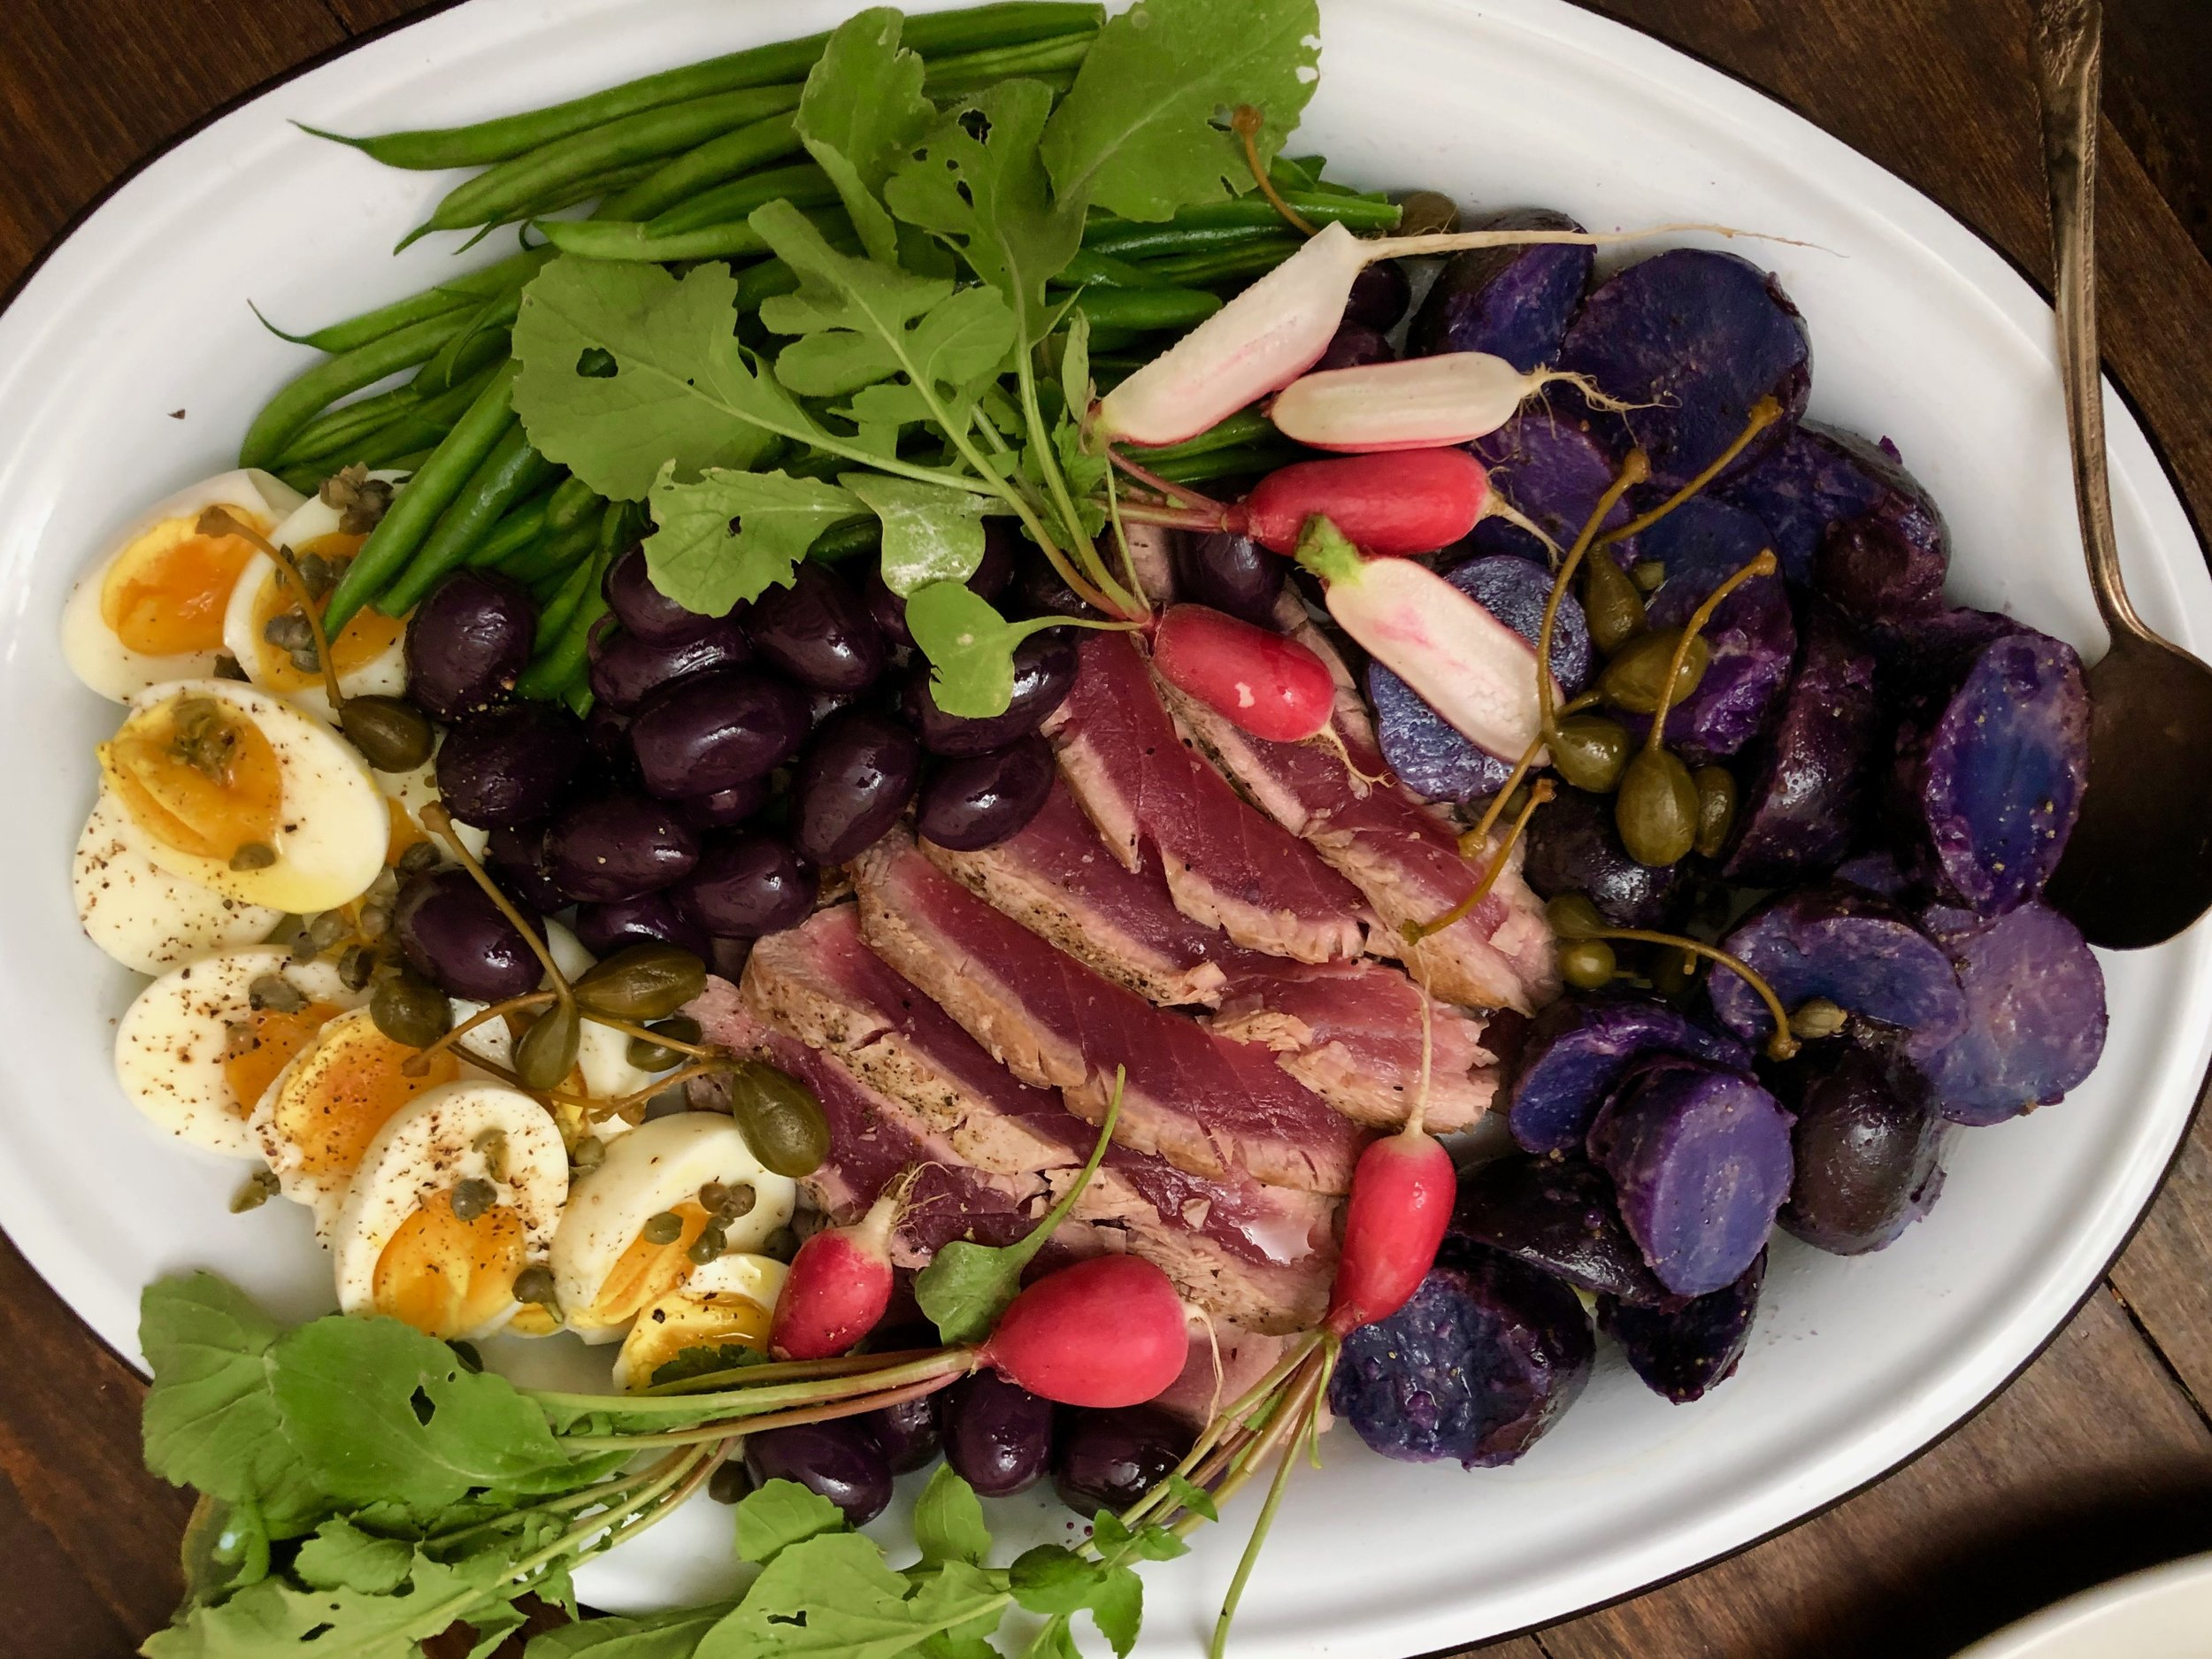 Seared tuna niçoise platter is a colorful combination of radish, string beansn potatoes and hard boiled eggs.